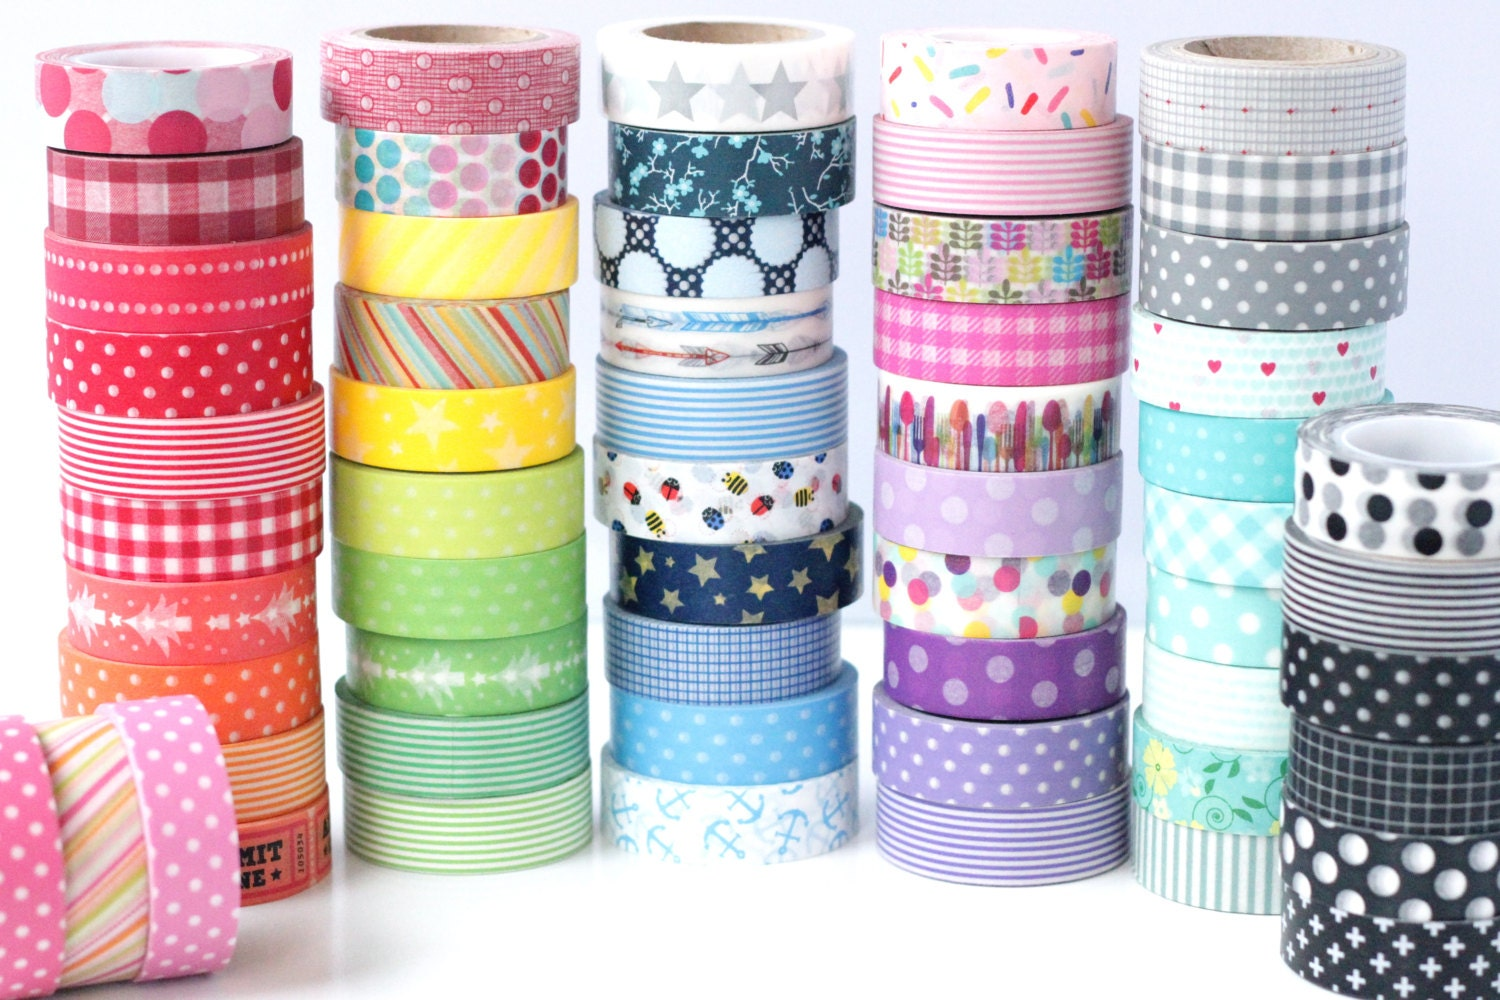 pick any 10 rolls of washi tape 85 choices stripes dots chevron grid floral vintage. Black Bedroom Furniture Sets. Home Design Ideas